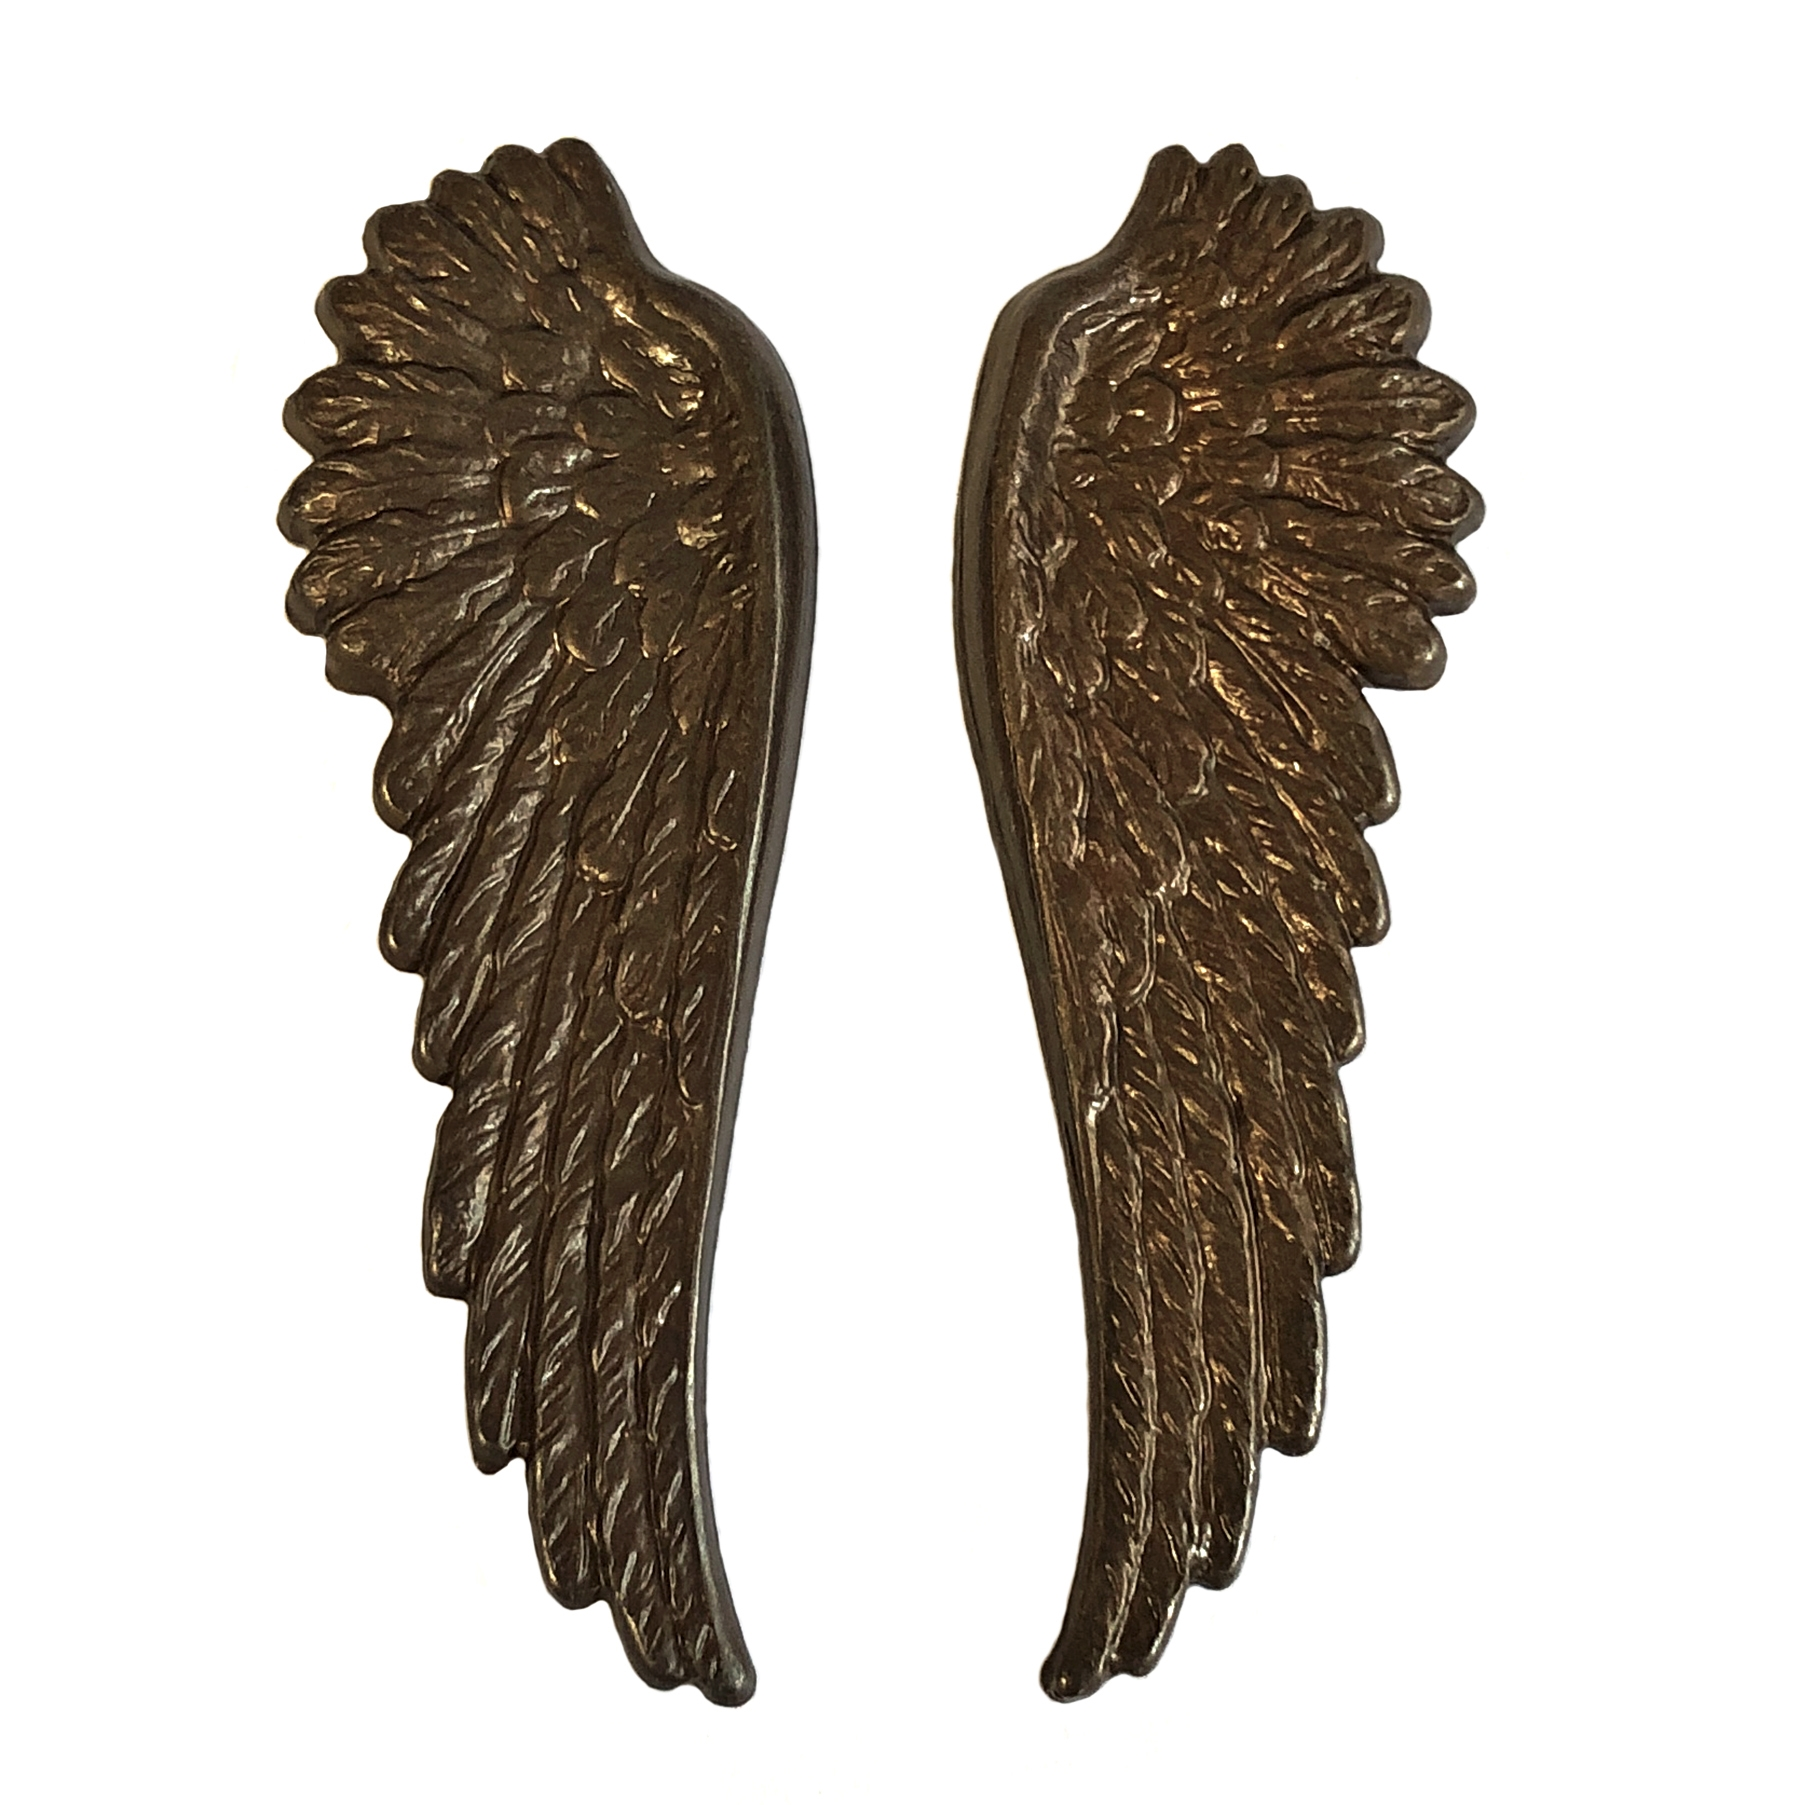 gossamer wings, chocolate brass, wings, brass stamping, steampunk, steampunk wings, brass, chocolate plated brass, jewelry wings, US made, nickel free, 52x17mm, jewelry making, jewelry supplies, vintage supplies, B'sue Boutiques, 09953